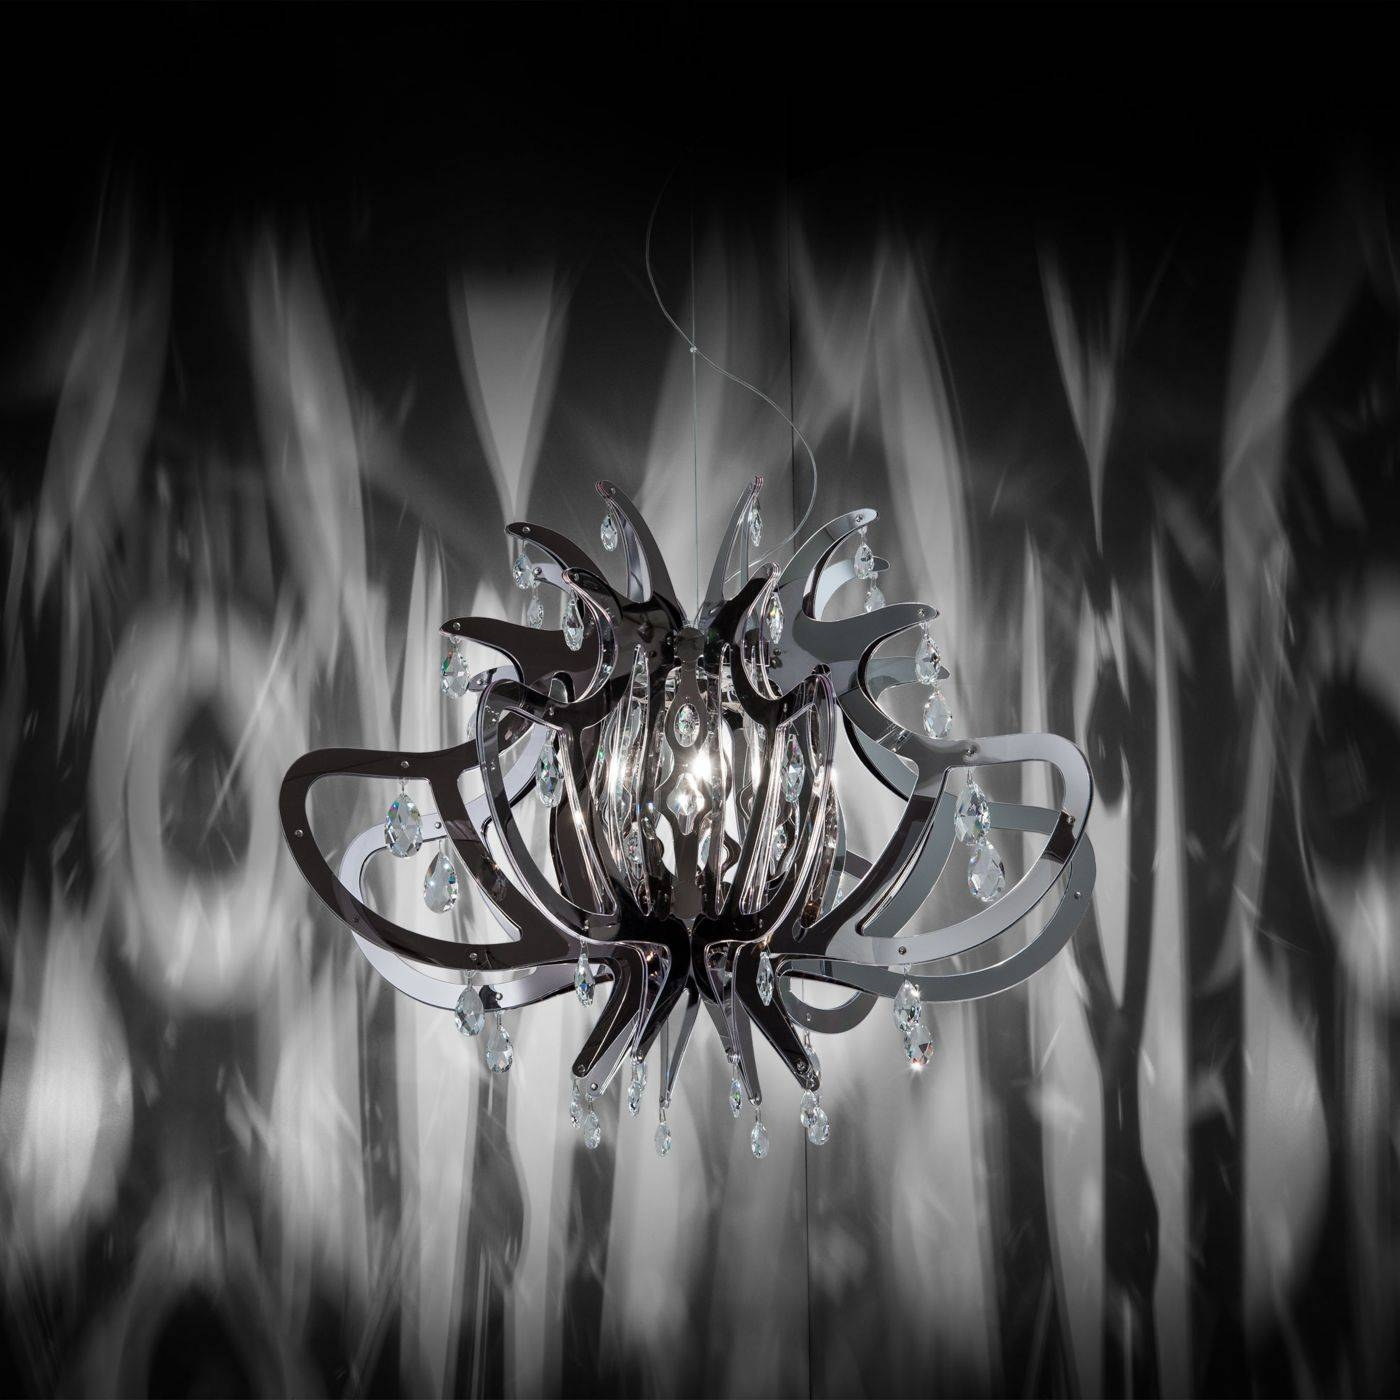 Slamp Medusa Pendant Light Pendant Lights Buy At Light (View 12 of 15)